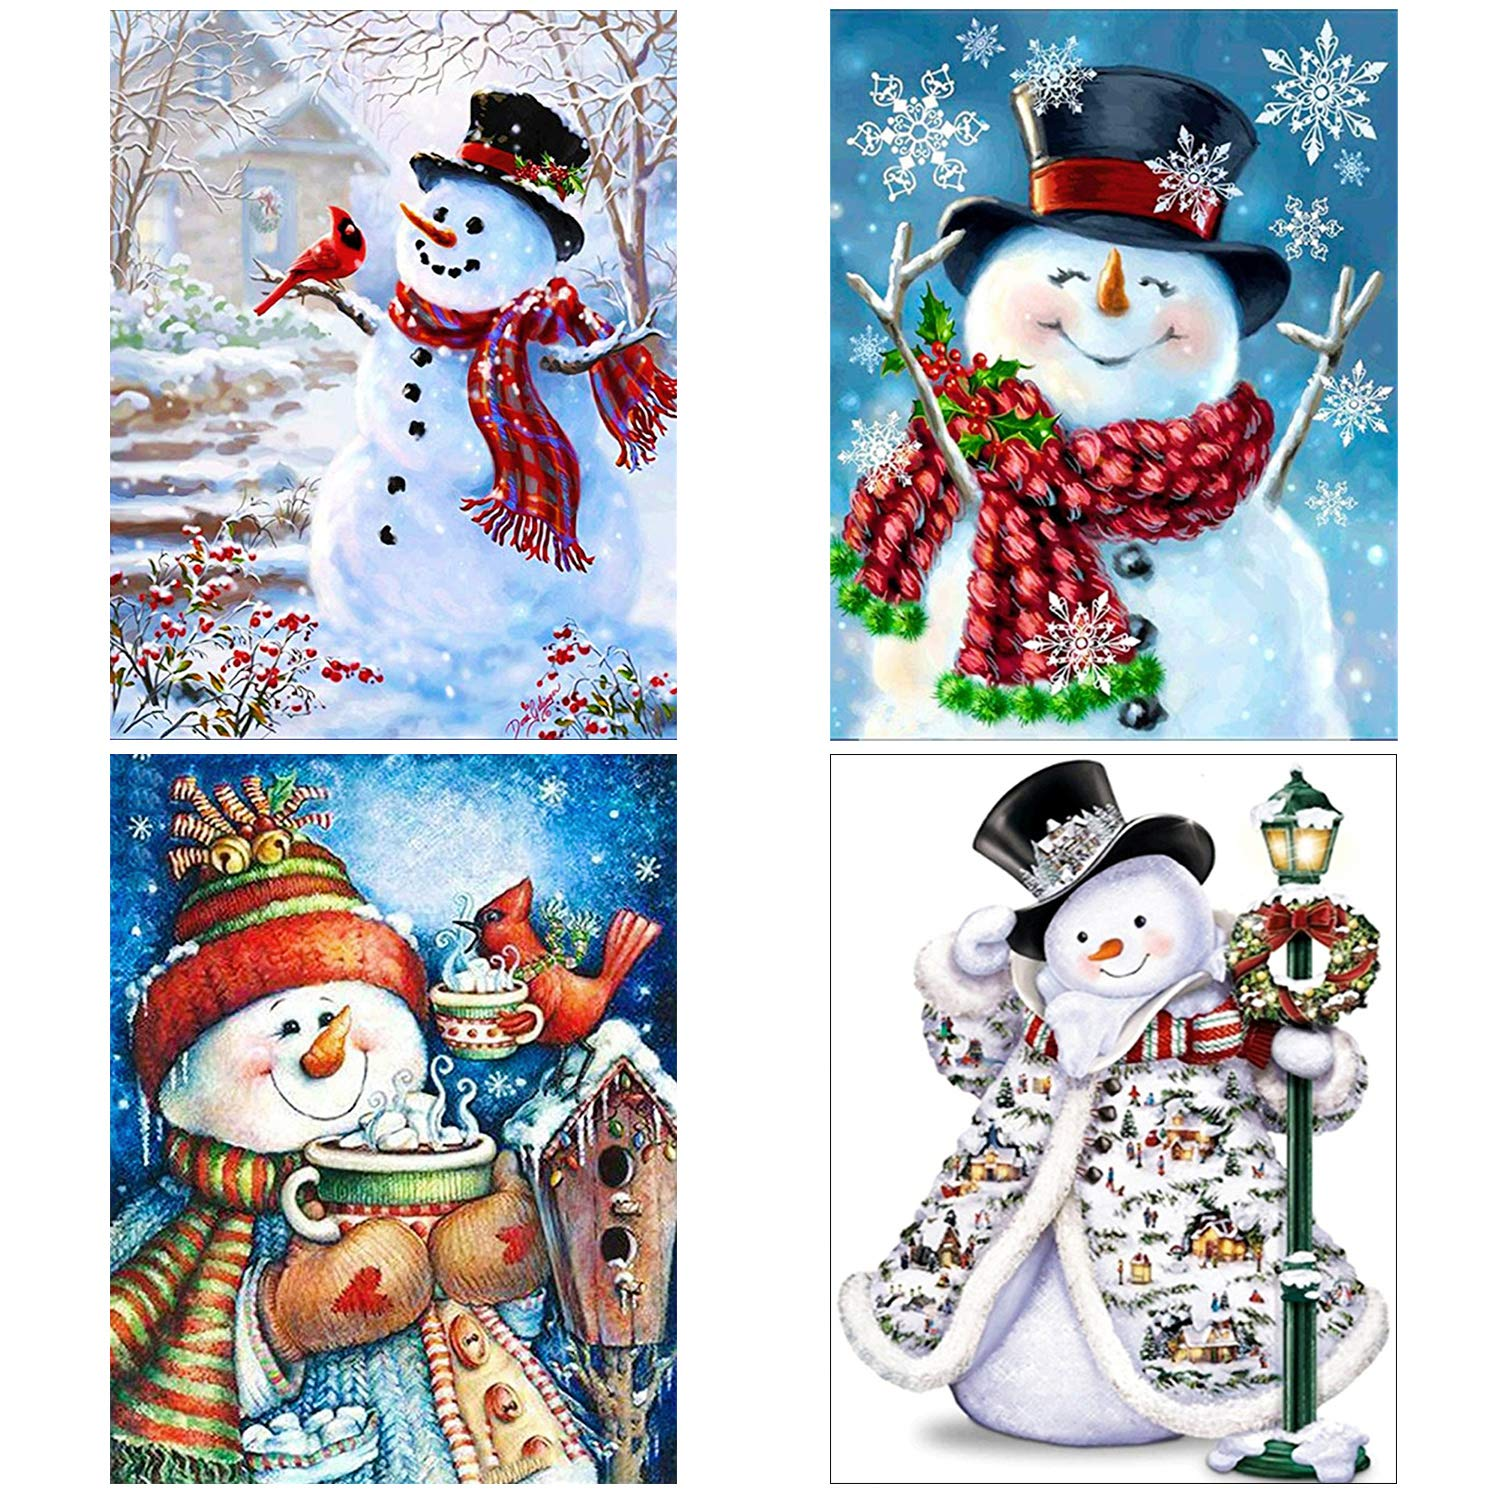 Aneco 4 Pack 5D DIY Diamond Painting Kits Snowman Full Drill Rhinestone Embroidery Cross Stitch Painting for Christmas Home Decor